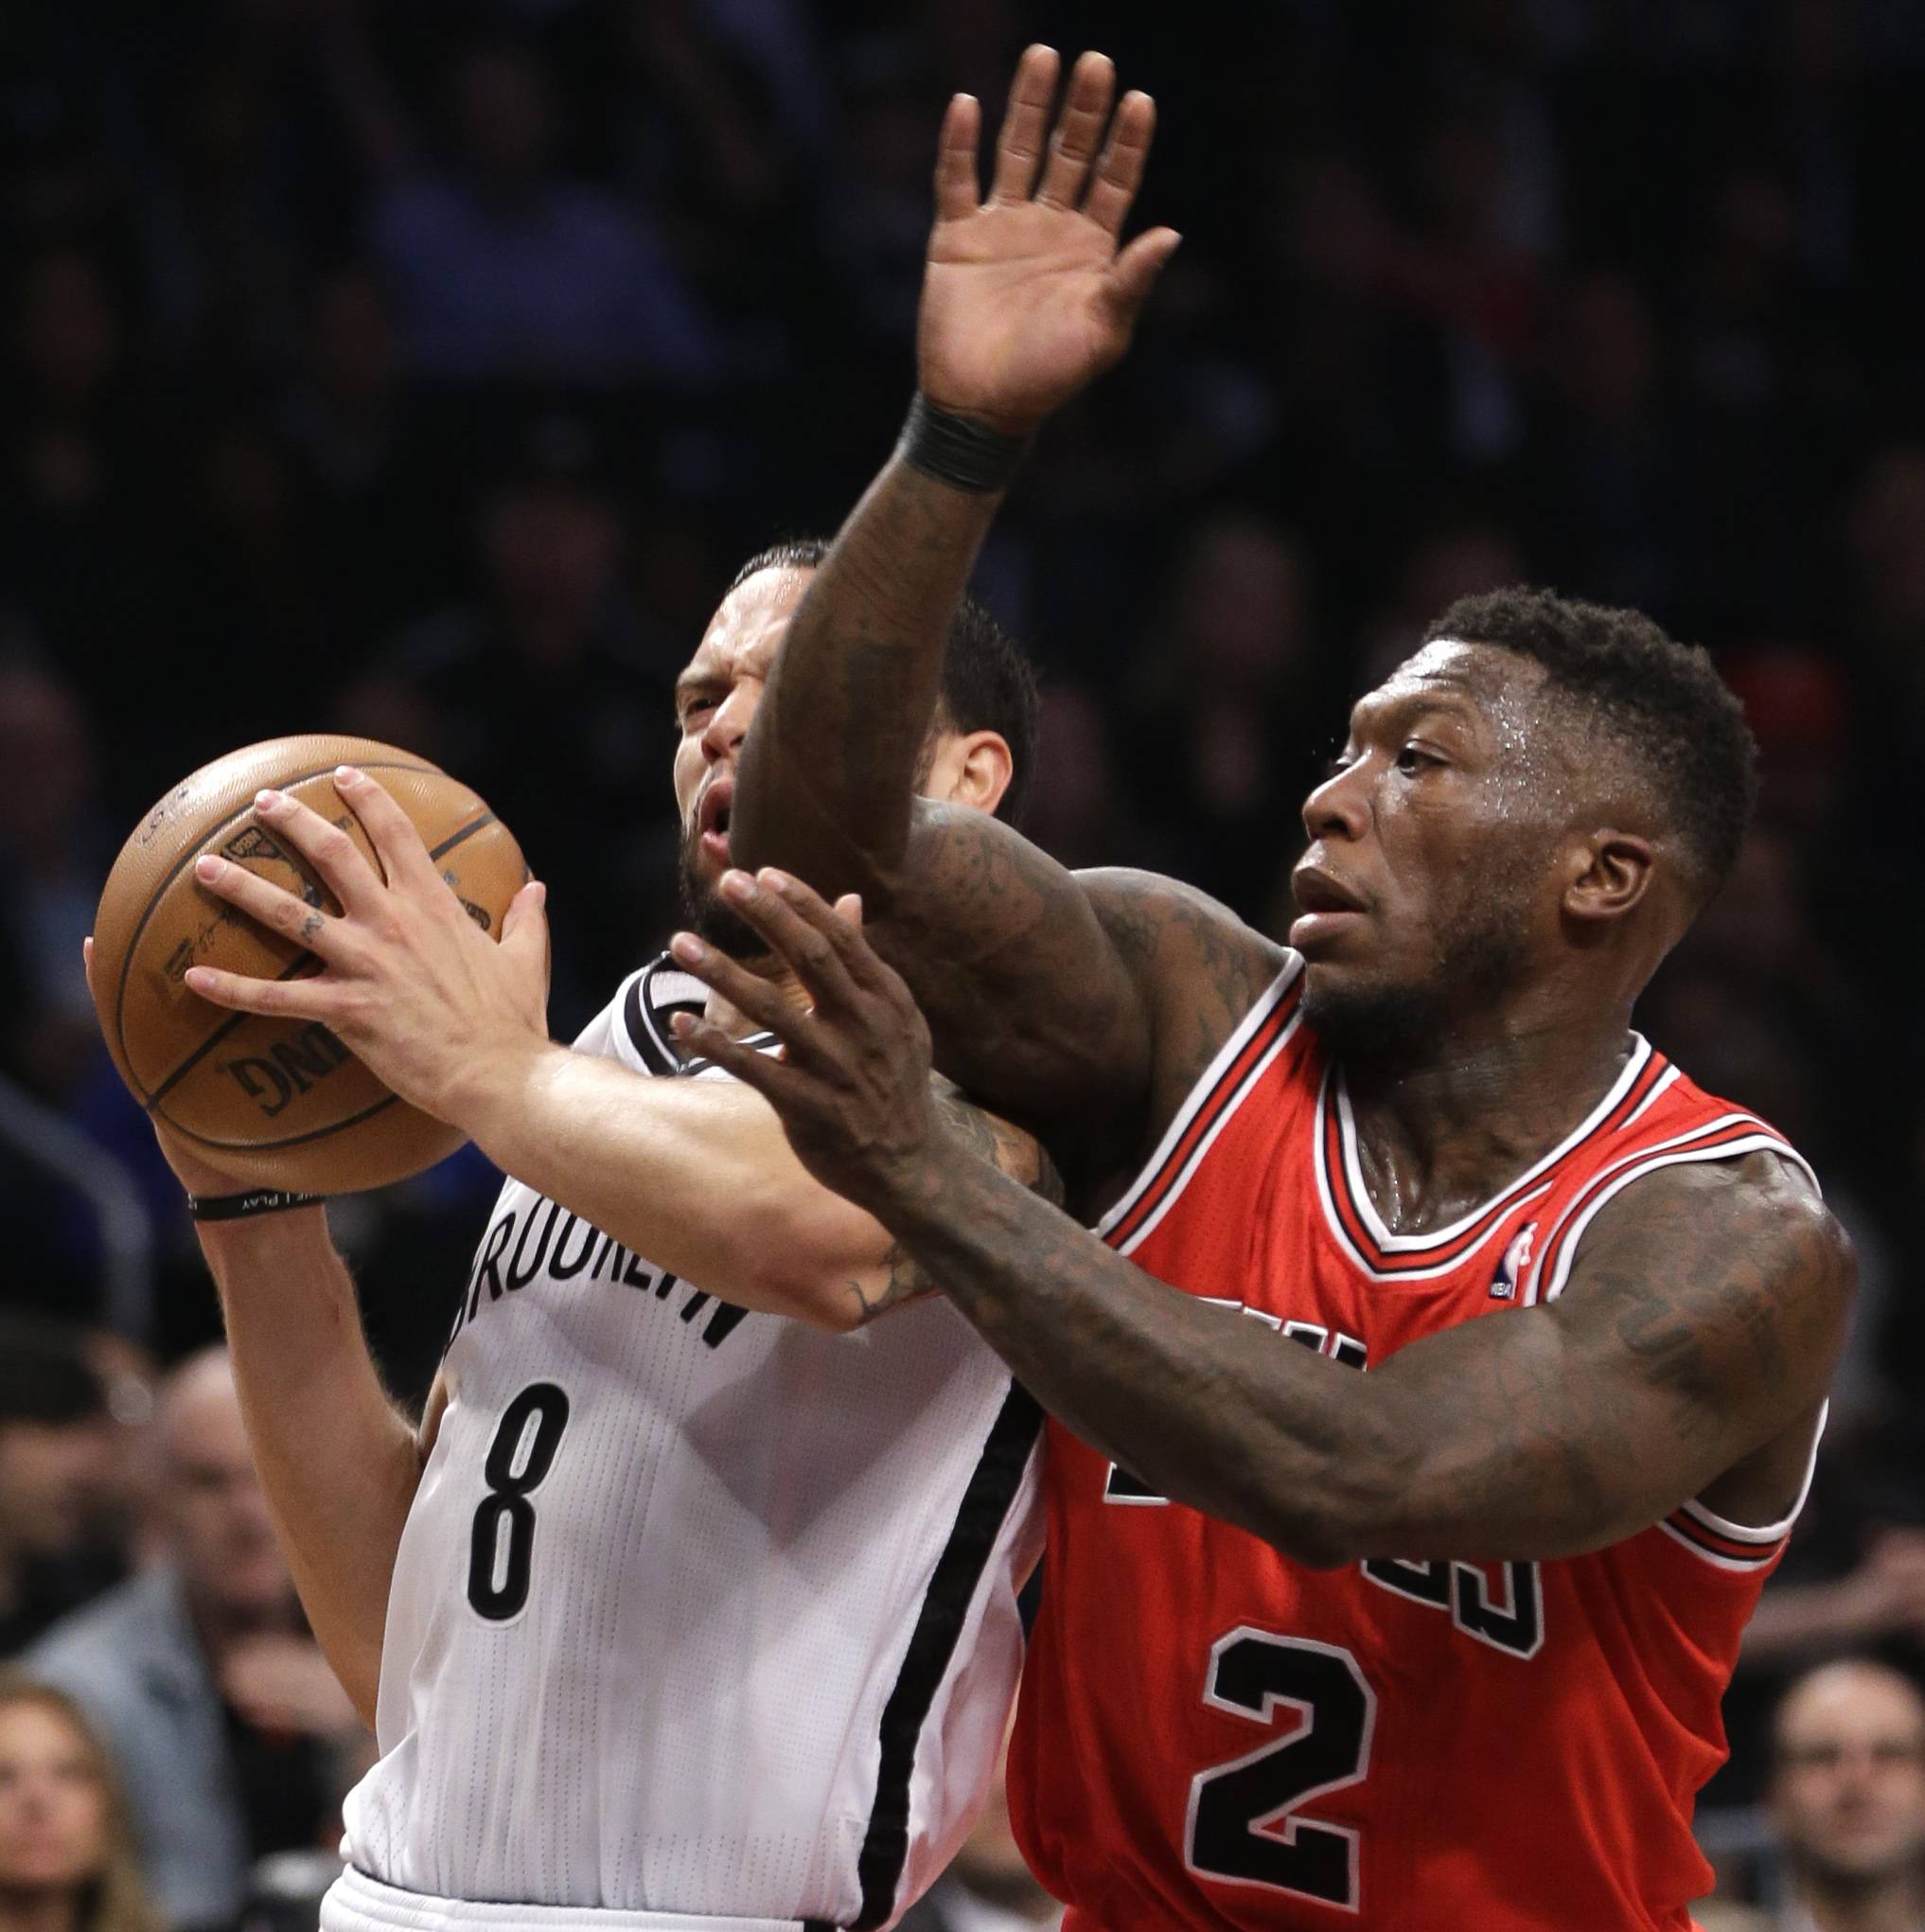 Brooklyn Nets guard Deron Williams (8) collides with Chicago Bulls guard Nate Robinson (2) as he drives toward the basket in the first half of Game 5 of their first-round NBA basketball playoff series, Monday, April 29, 2013, in New York.